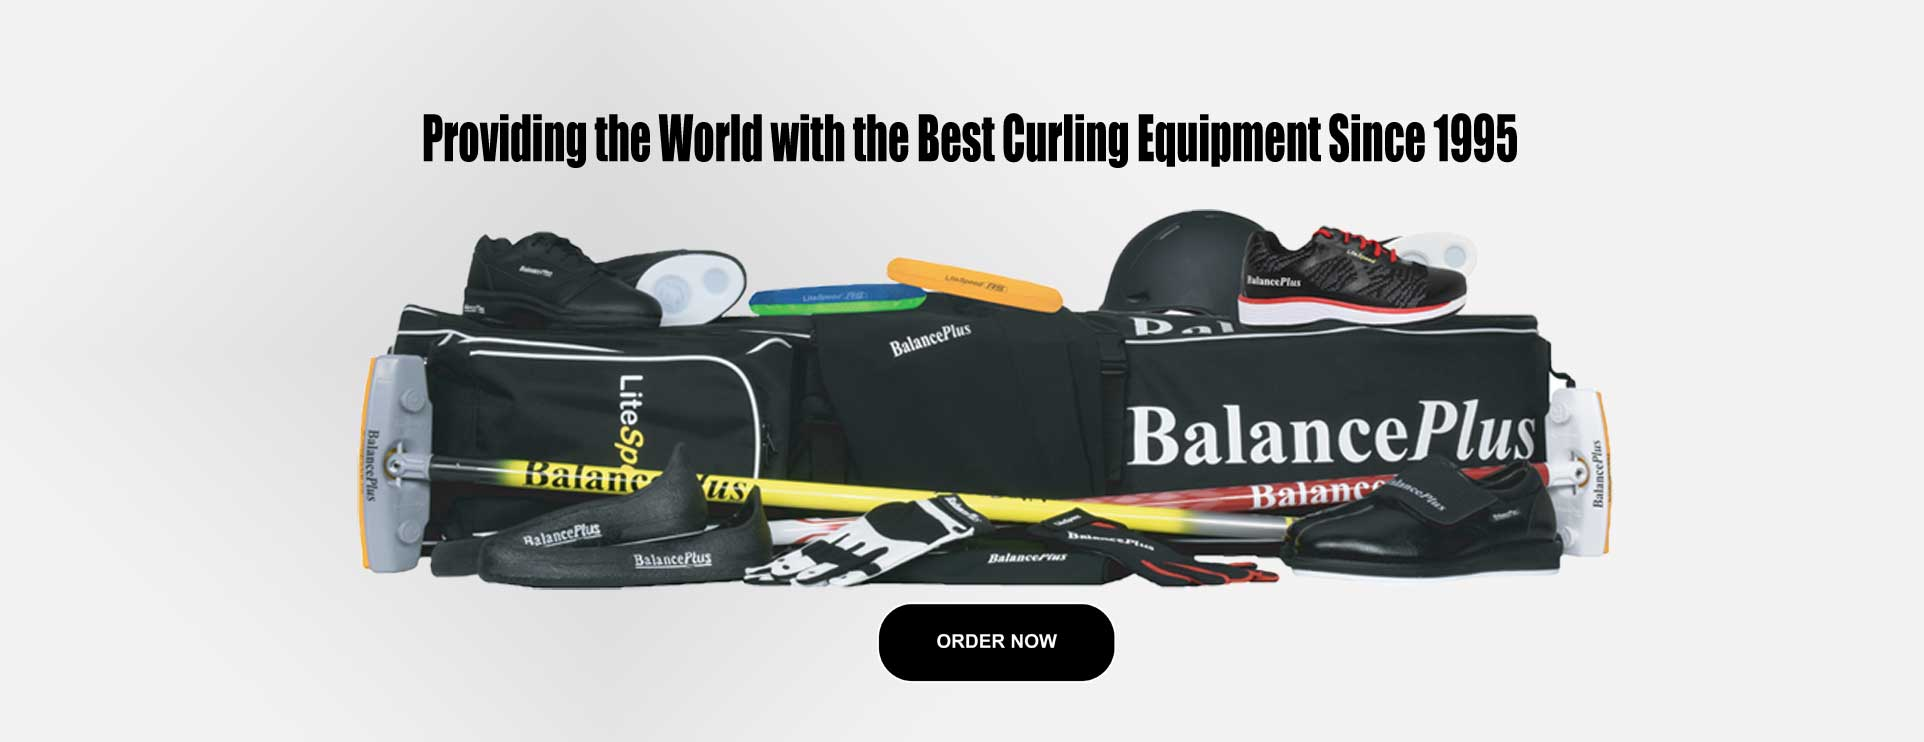 BalancePlus Curling Equipment photo of entire collection